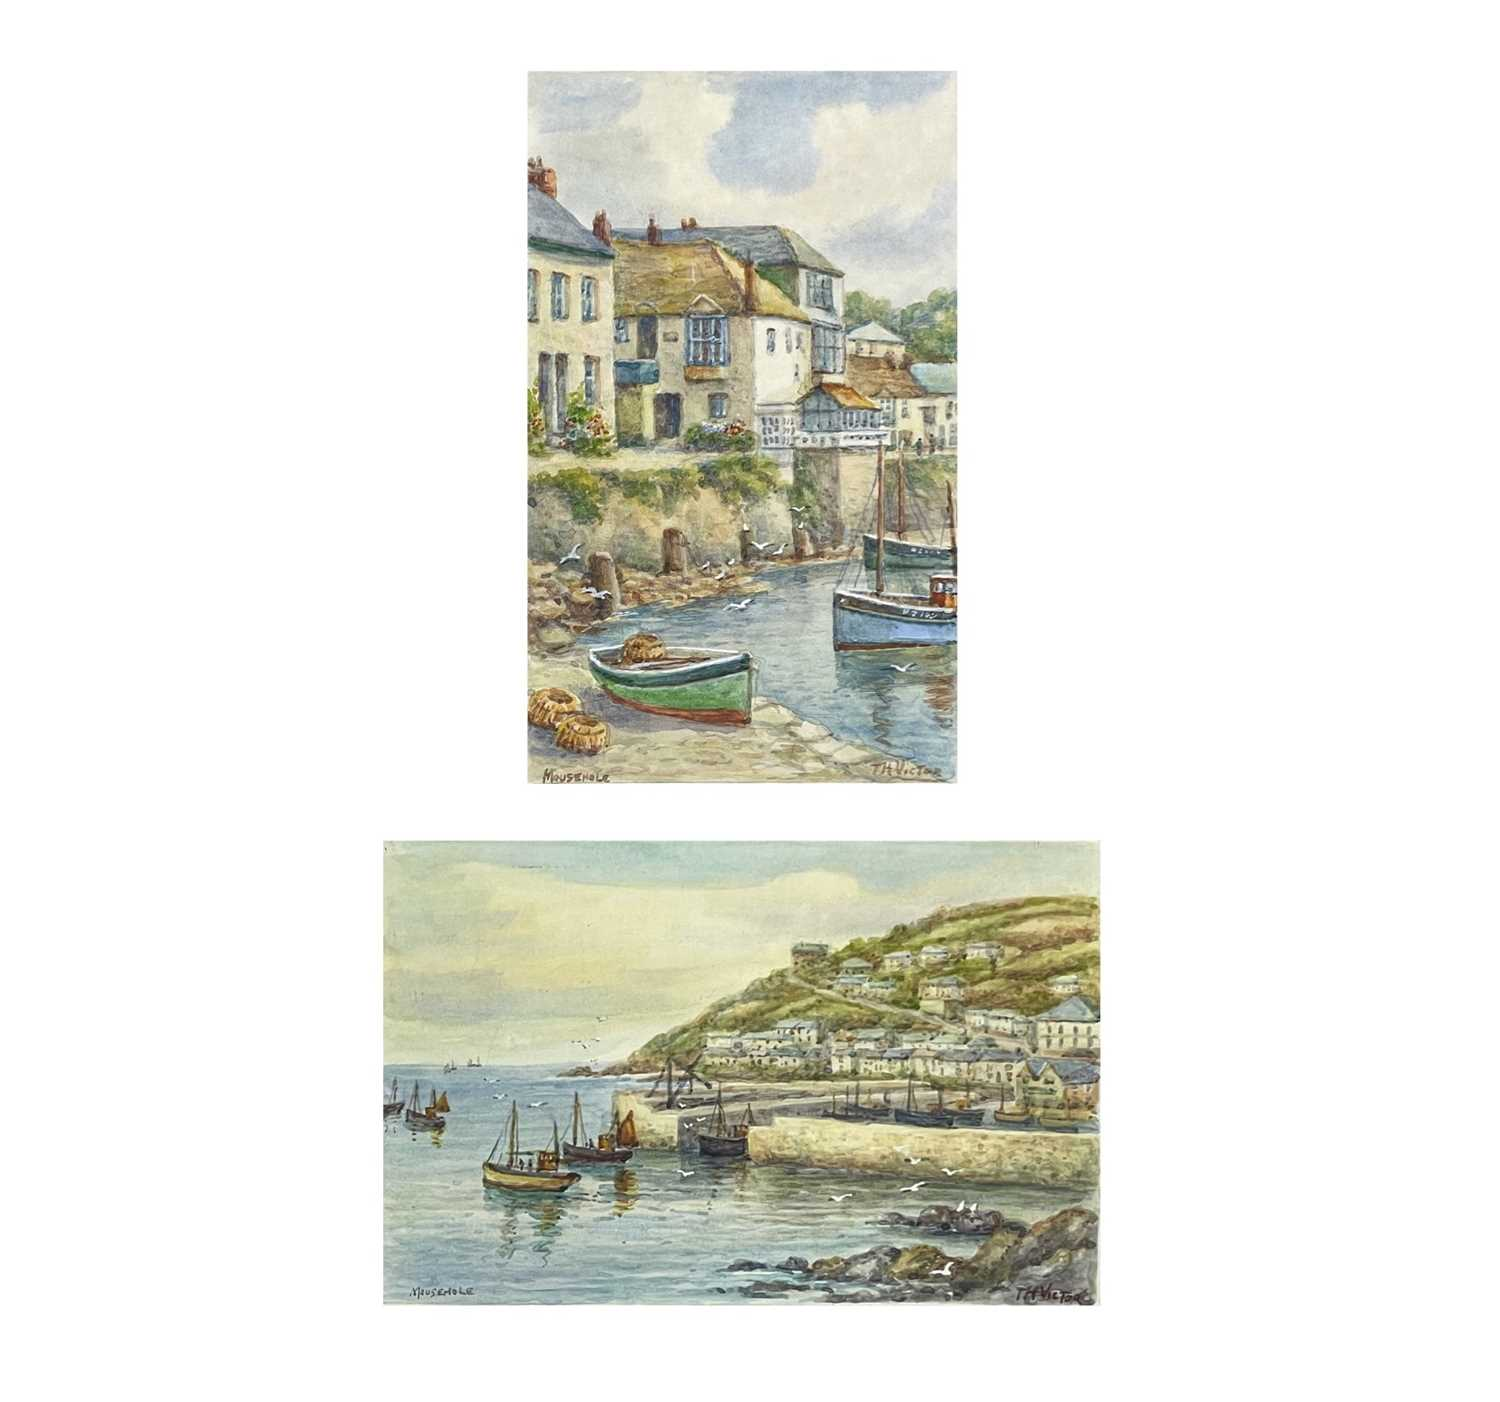 Thomas Herbert VICTOR (1894-1980)Mousehole Two watercoloursEach signed and inscribed 27.5 x 17cm and